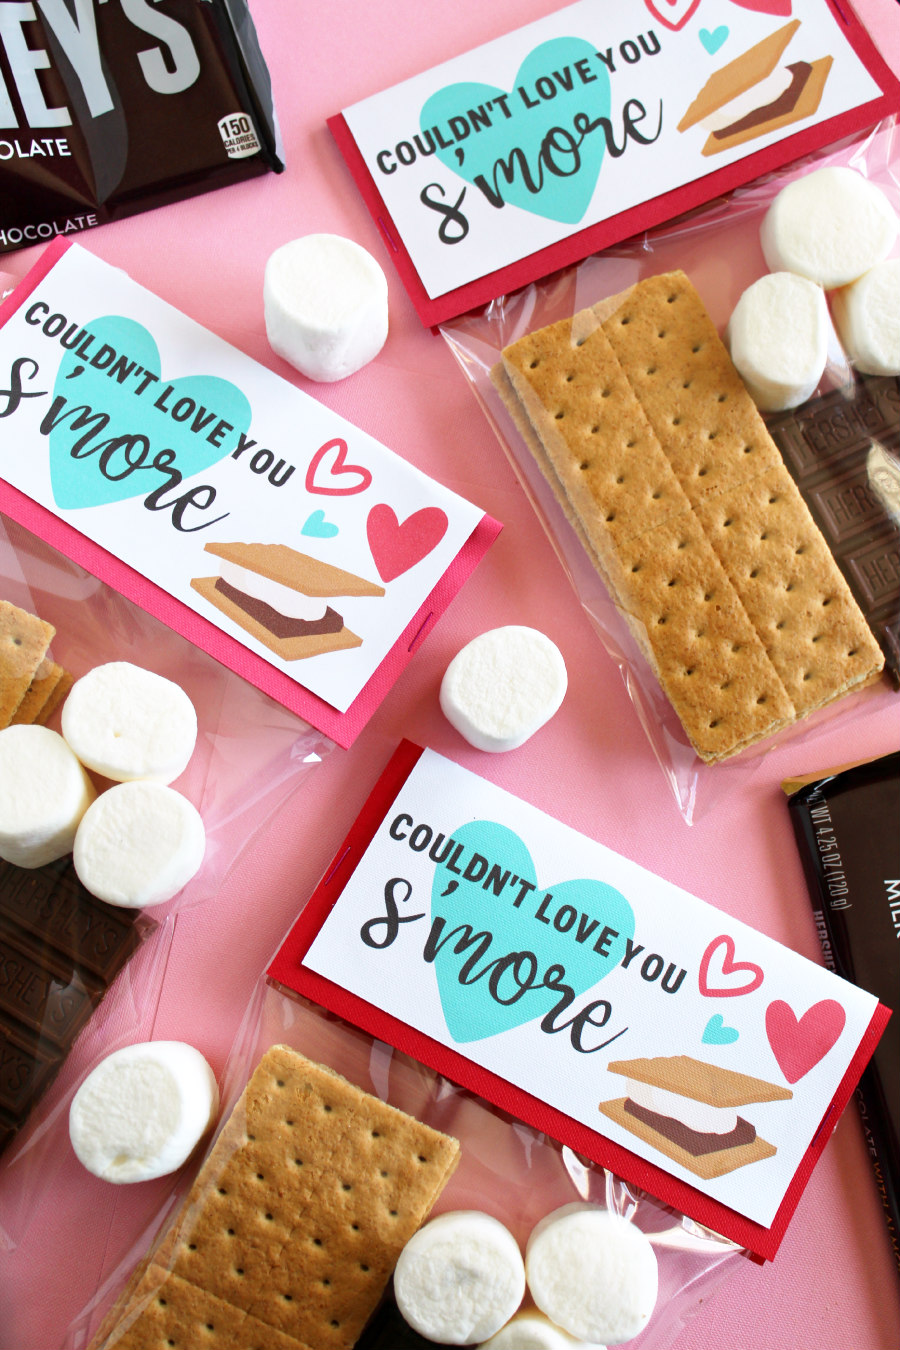 s'mores valentine's day treat topper made with cricut